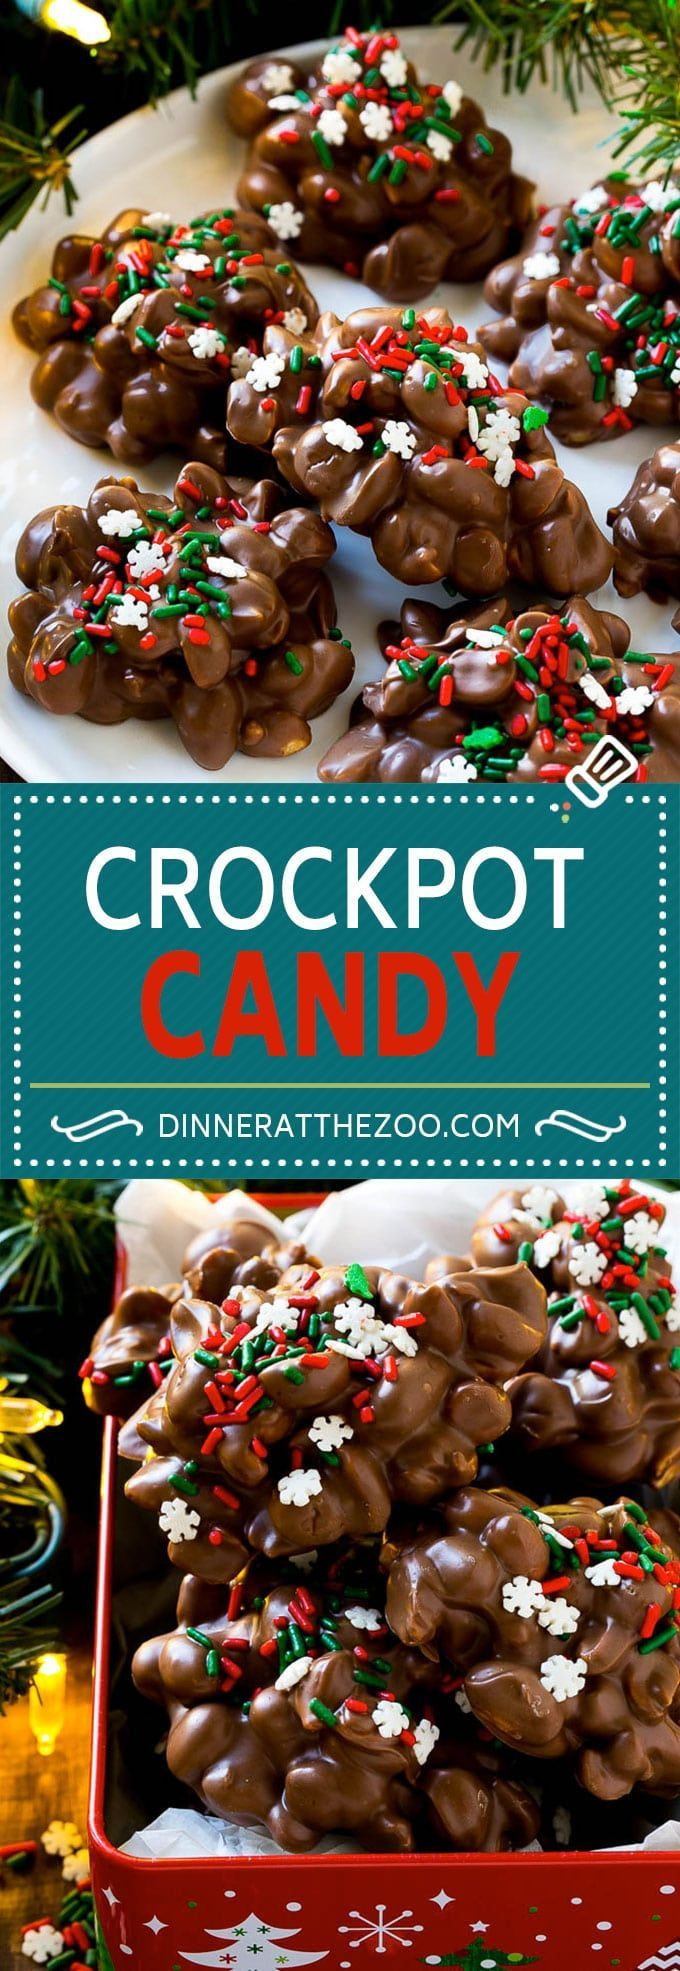 Crockpot Candy   Slow Cooker Candy   Crockpot Peanut Clusters   Chocolate Peanut Clusters